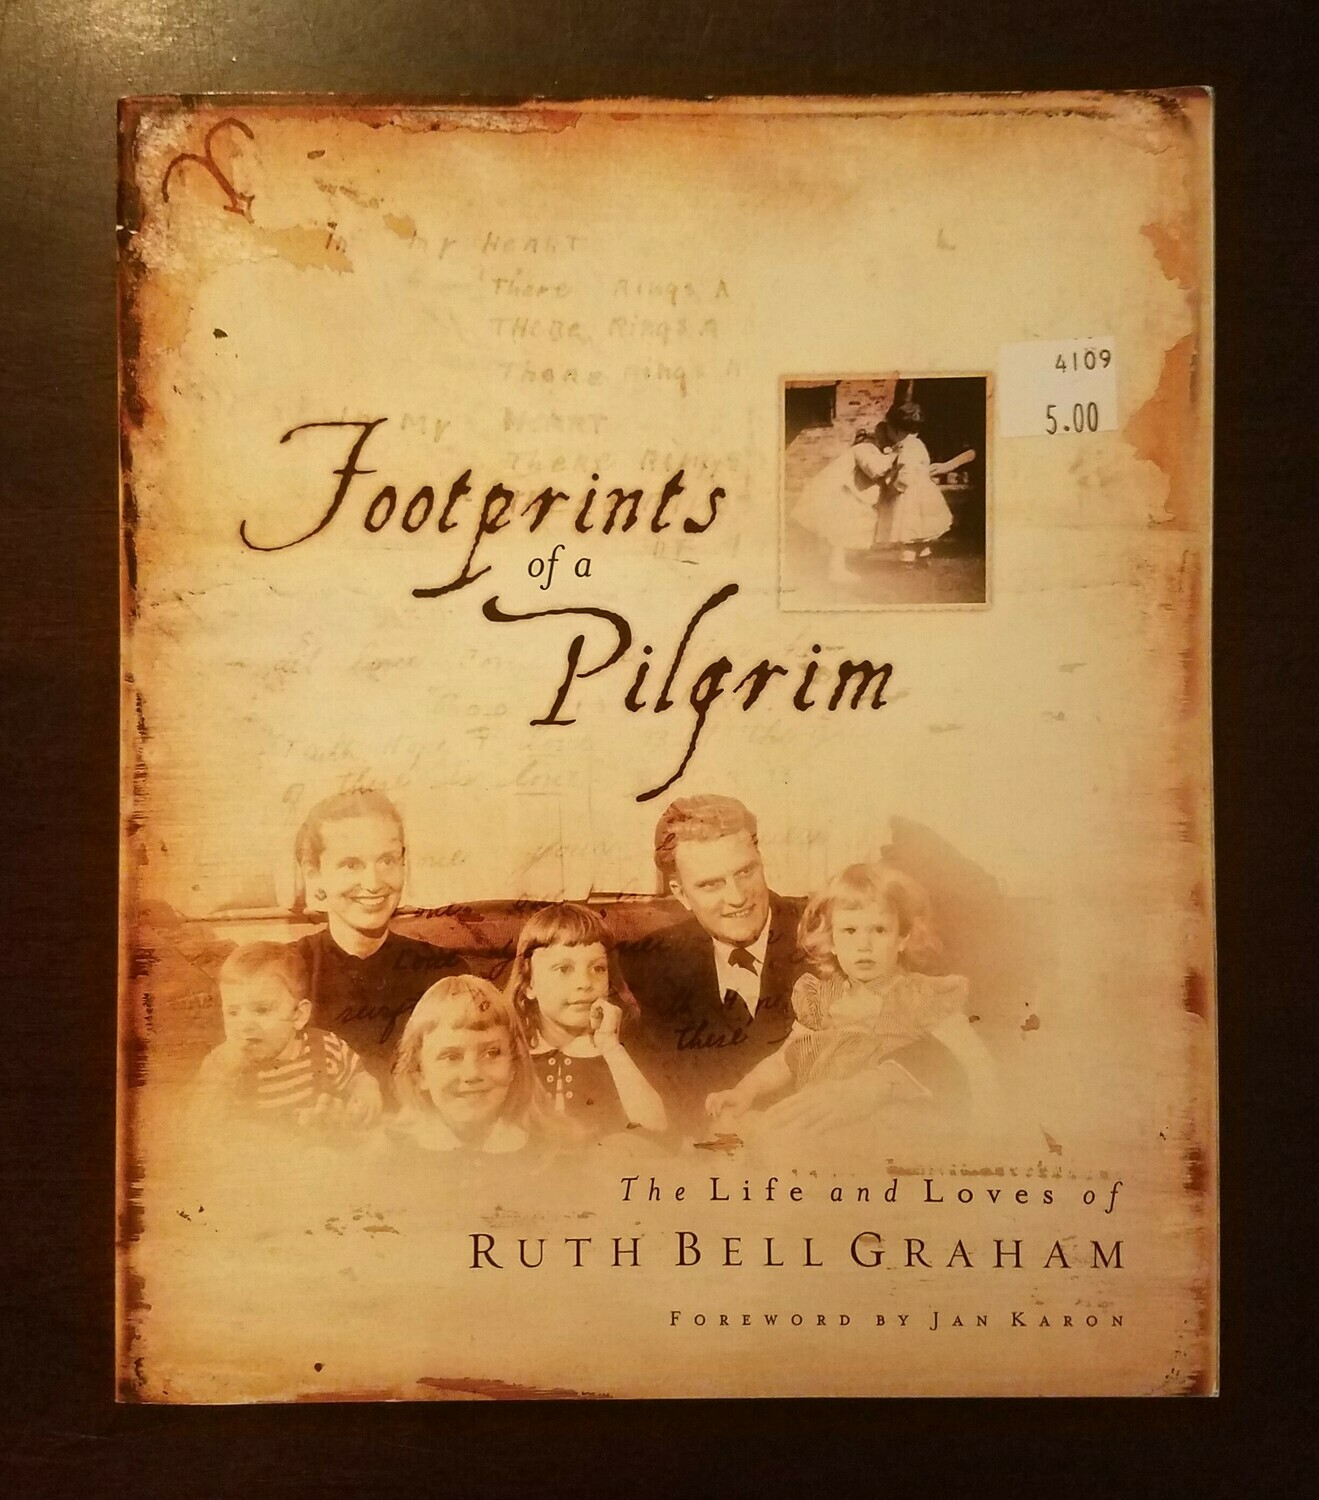 Footprints of a Pilgrim by Ruth Bell Graham